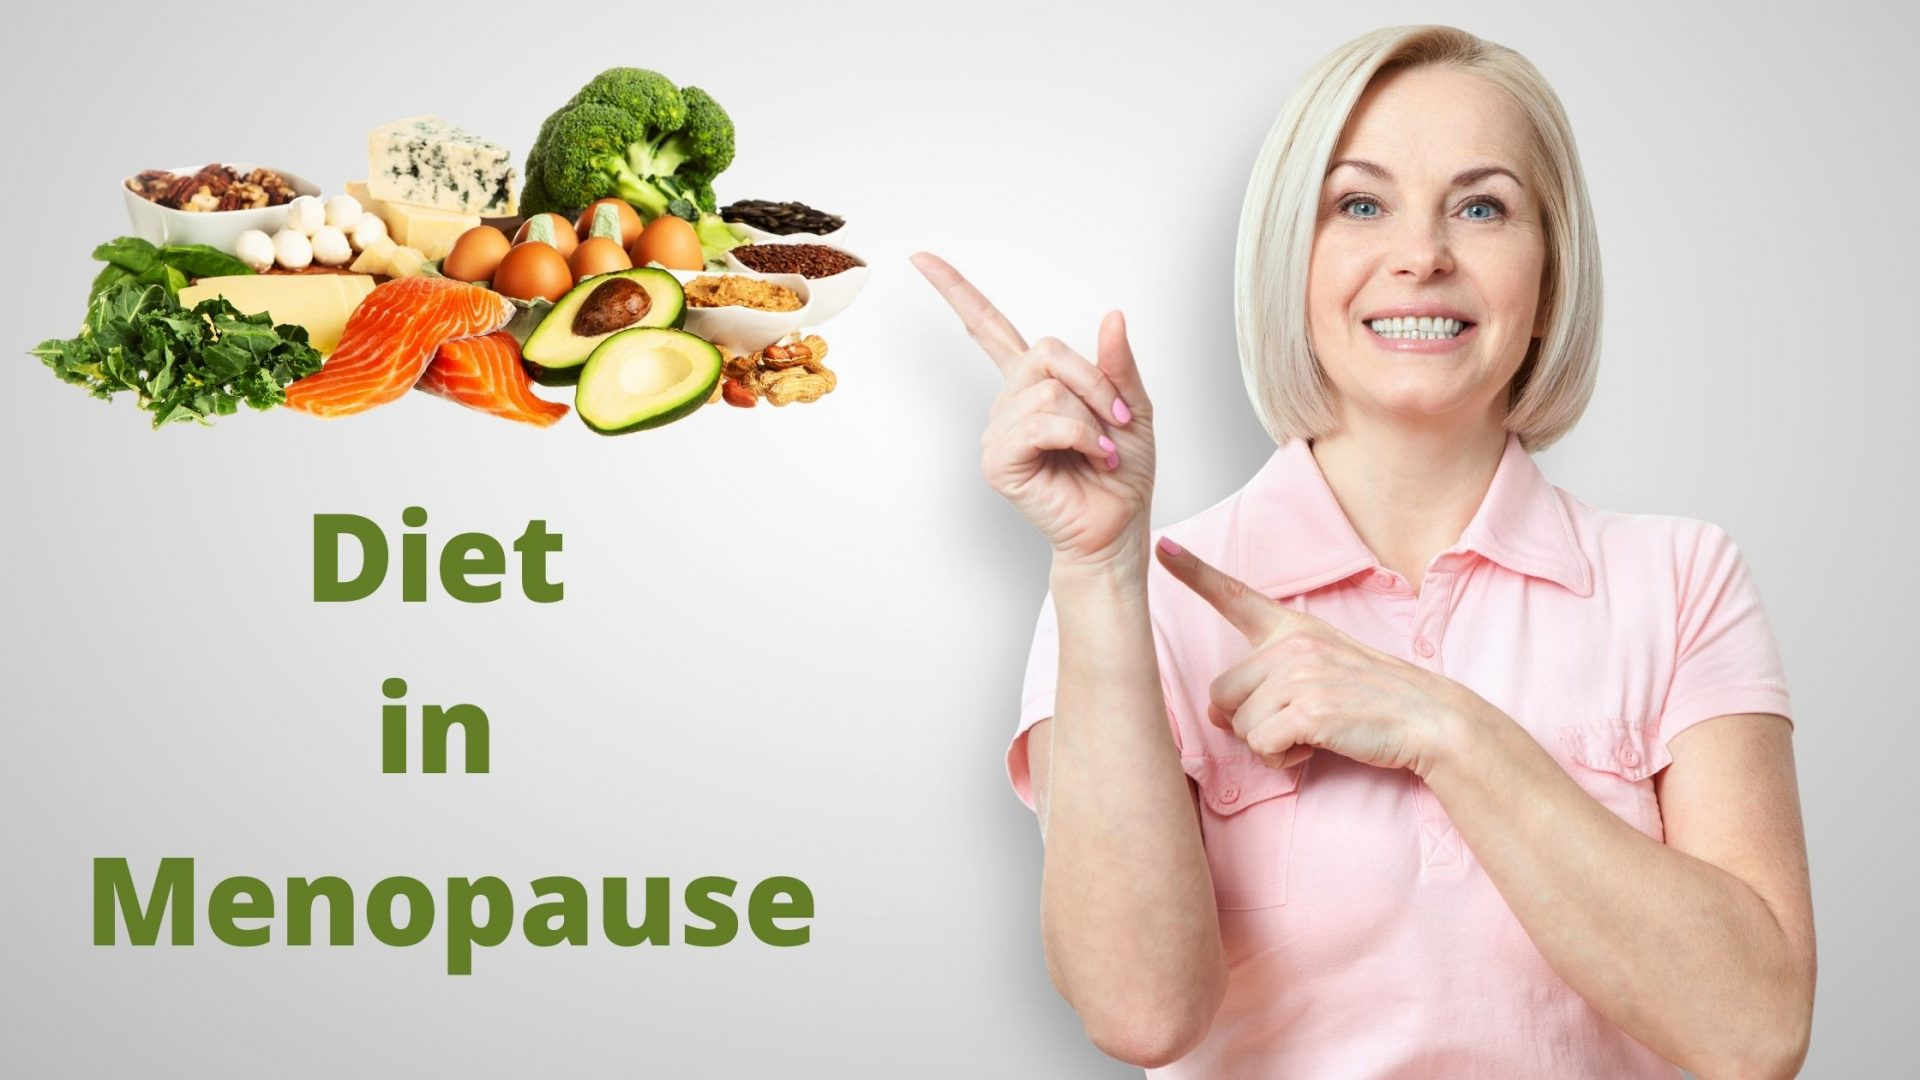 What Is the Best Diet in Menopause